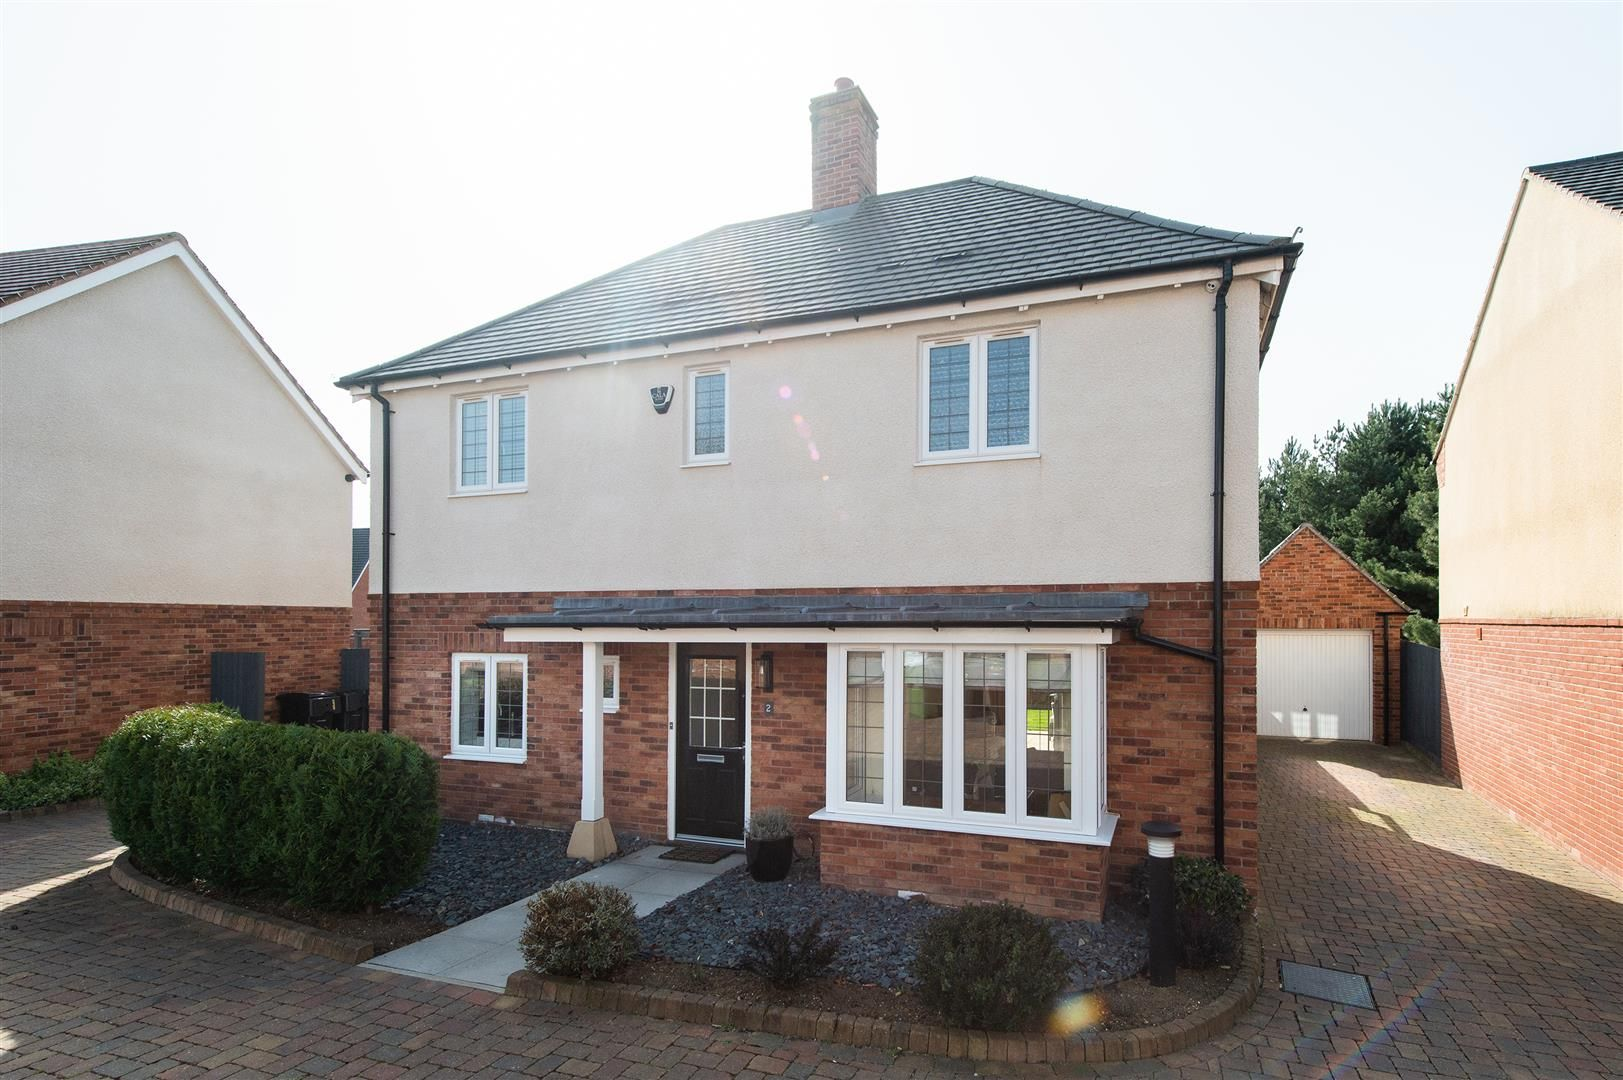 3 bed detached for sale in Hagley  - Property Image 32